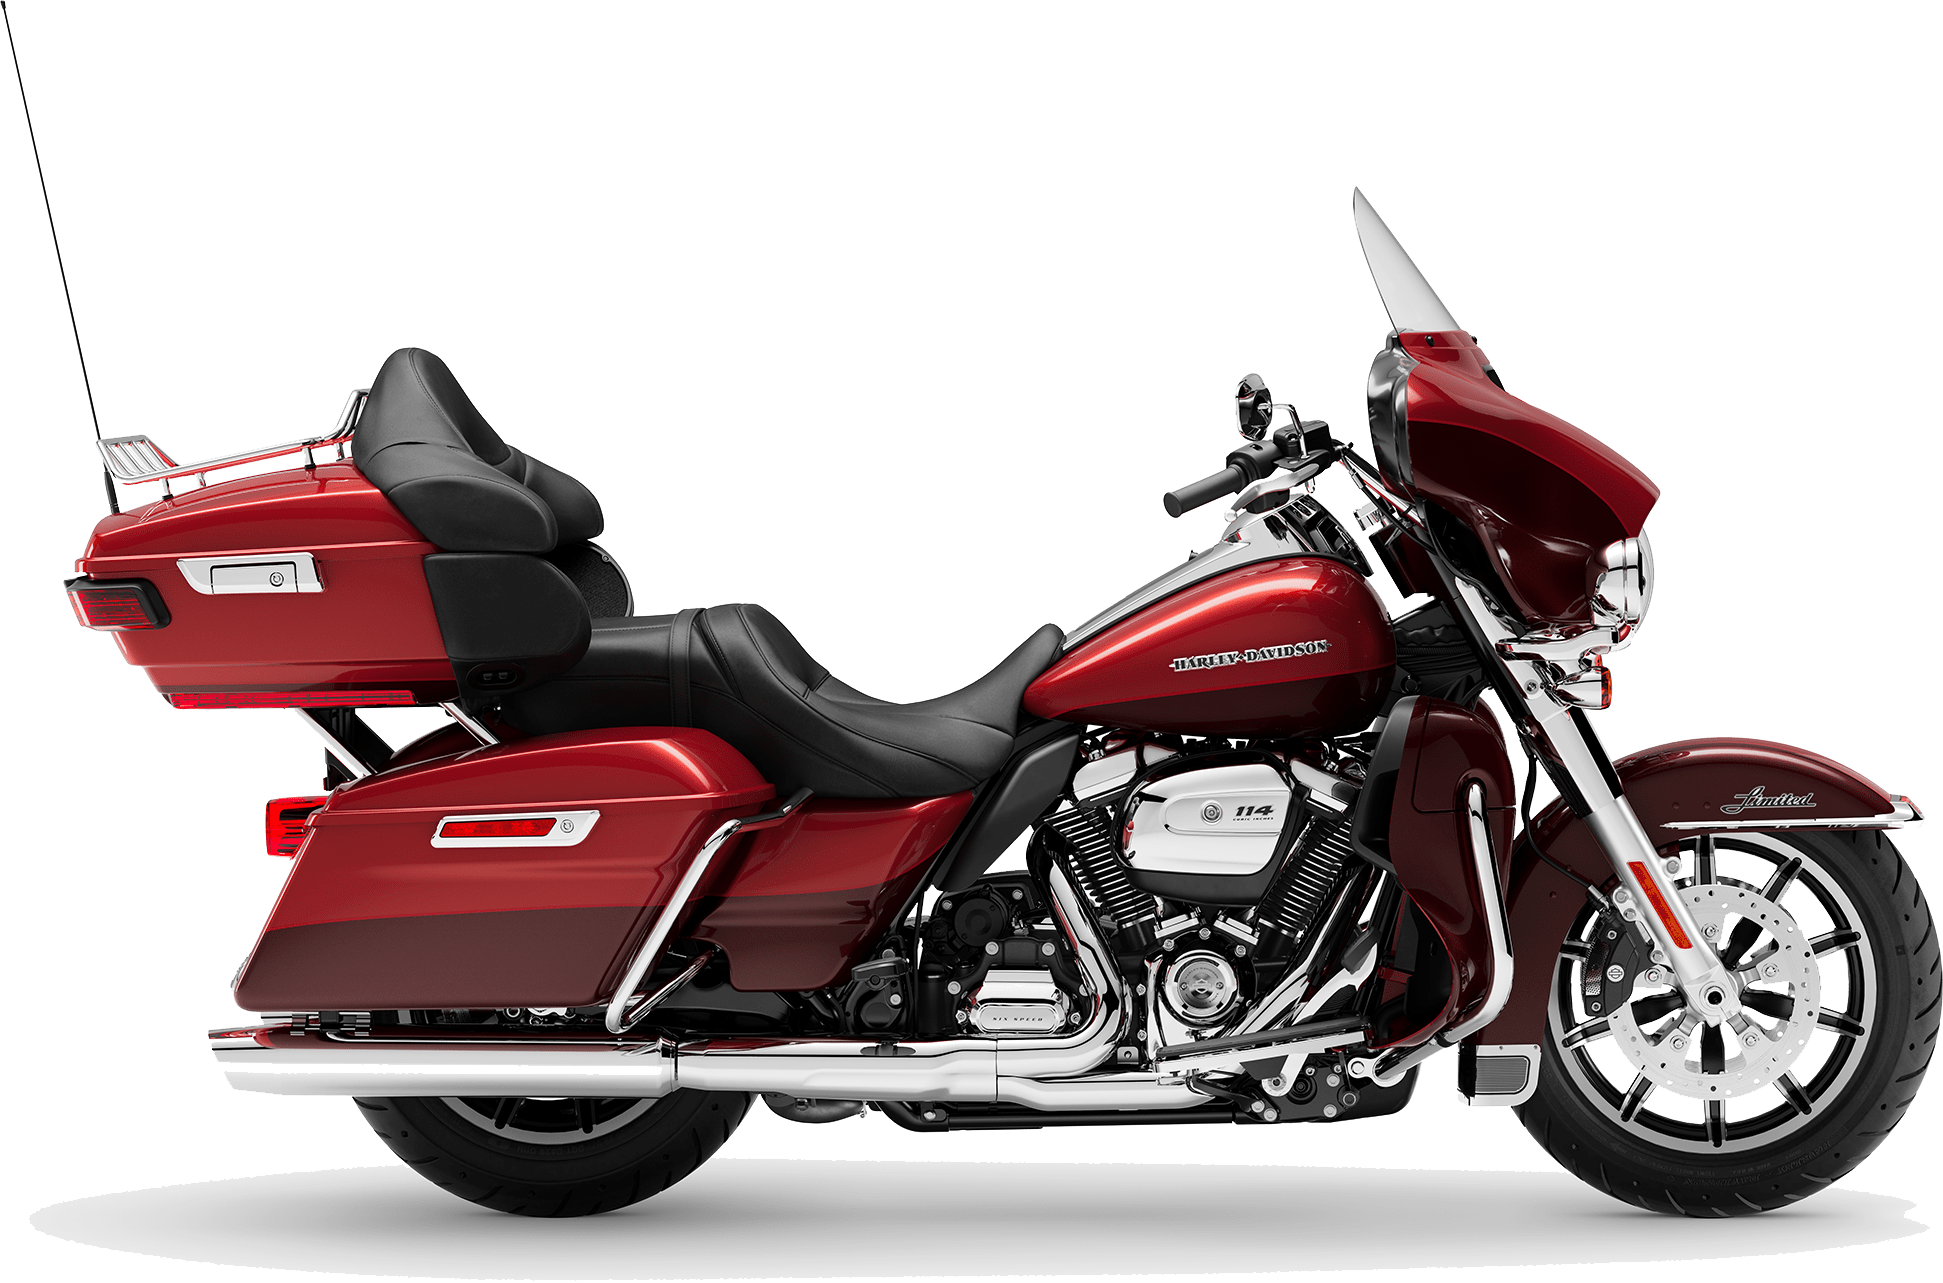 2019 Harley-Davidson H-D Touring Ultra Limited Low Wicked Red Twisted Cherry